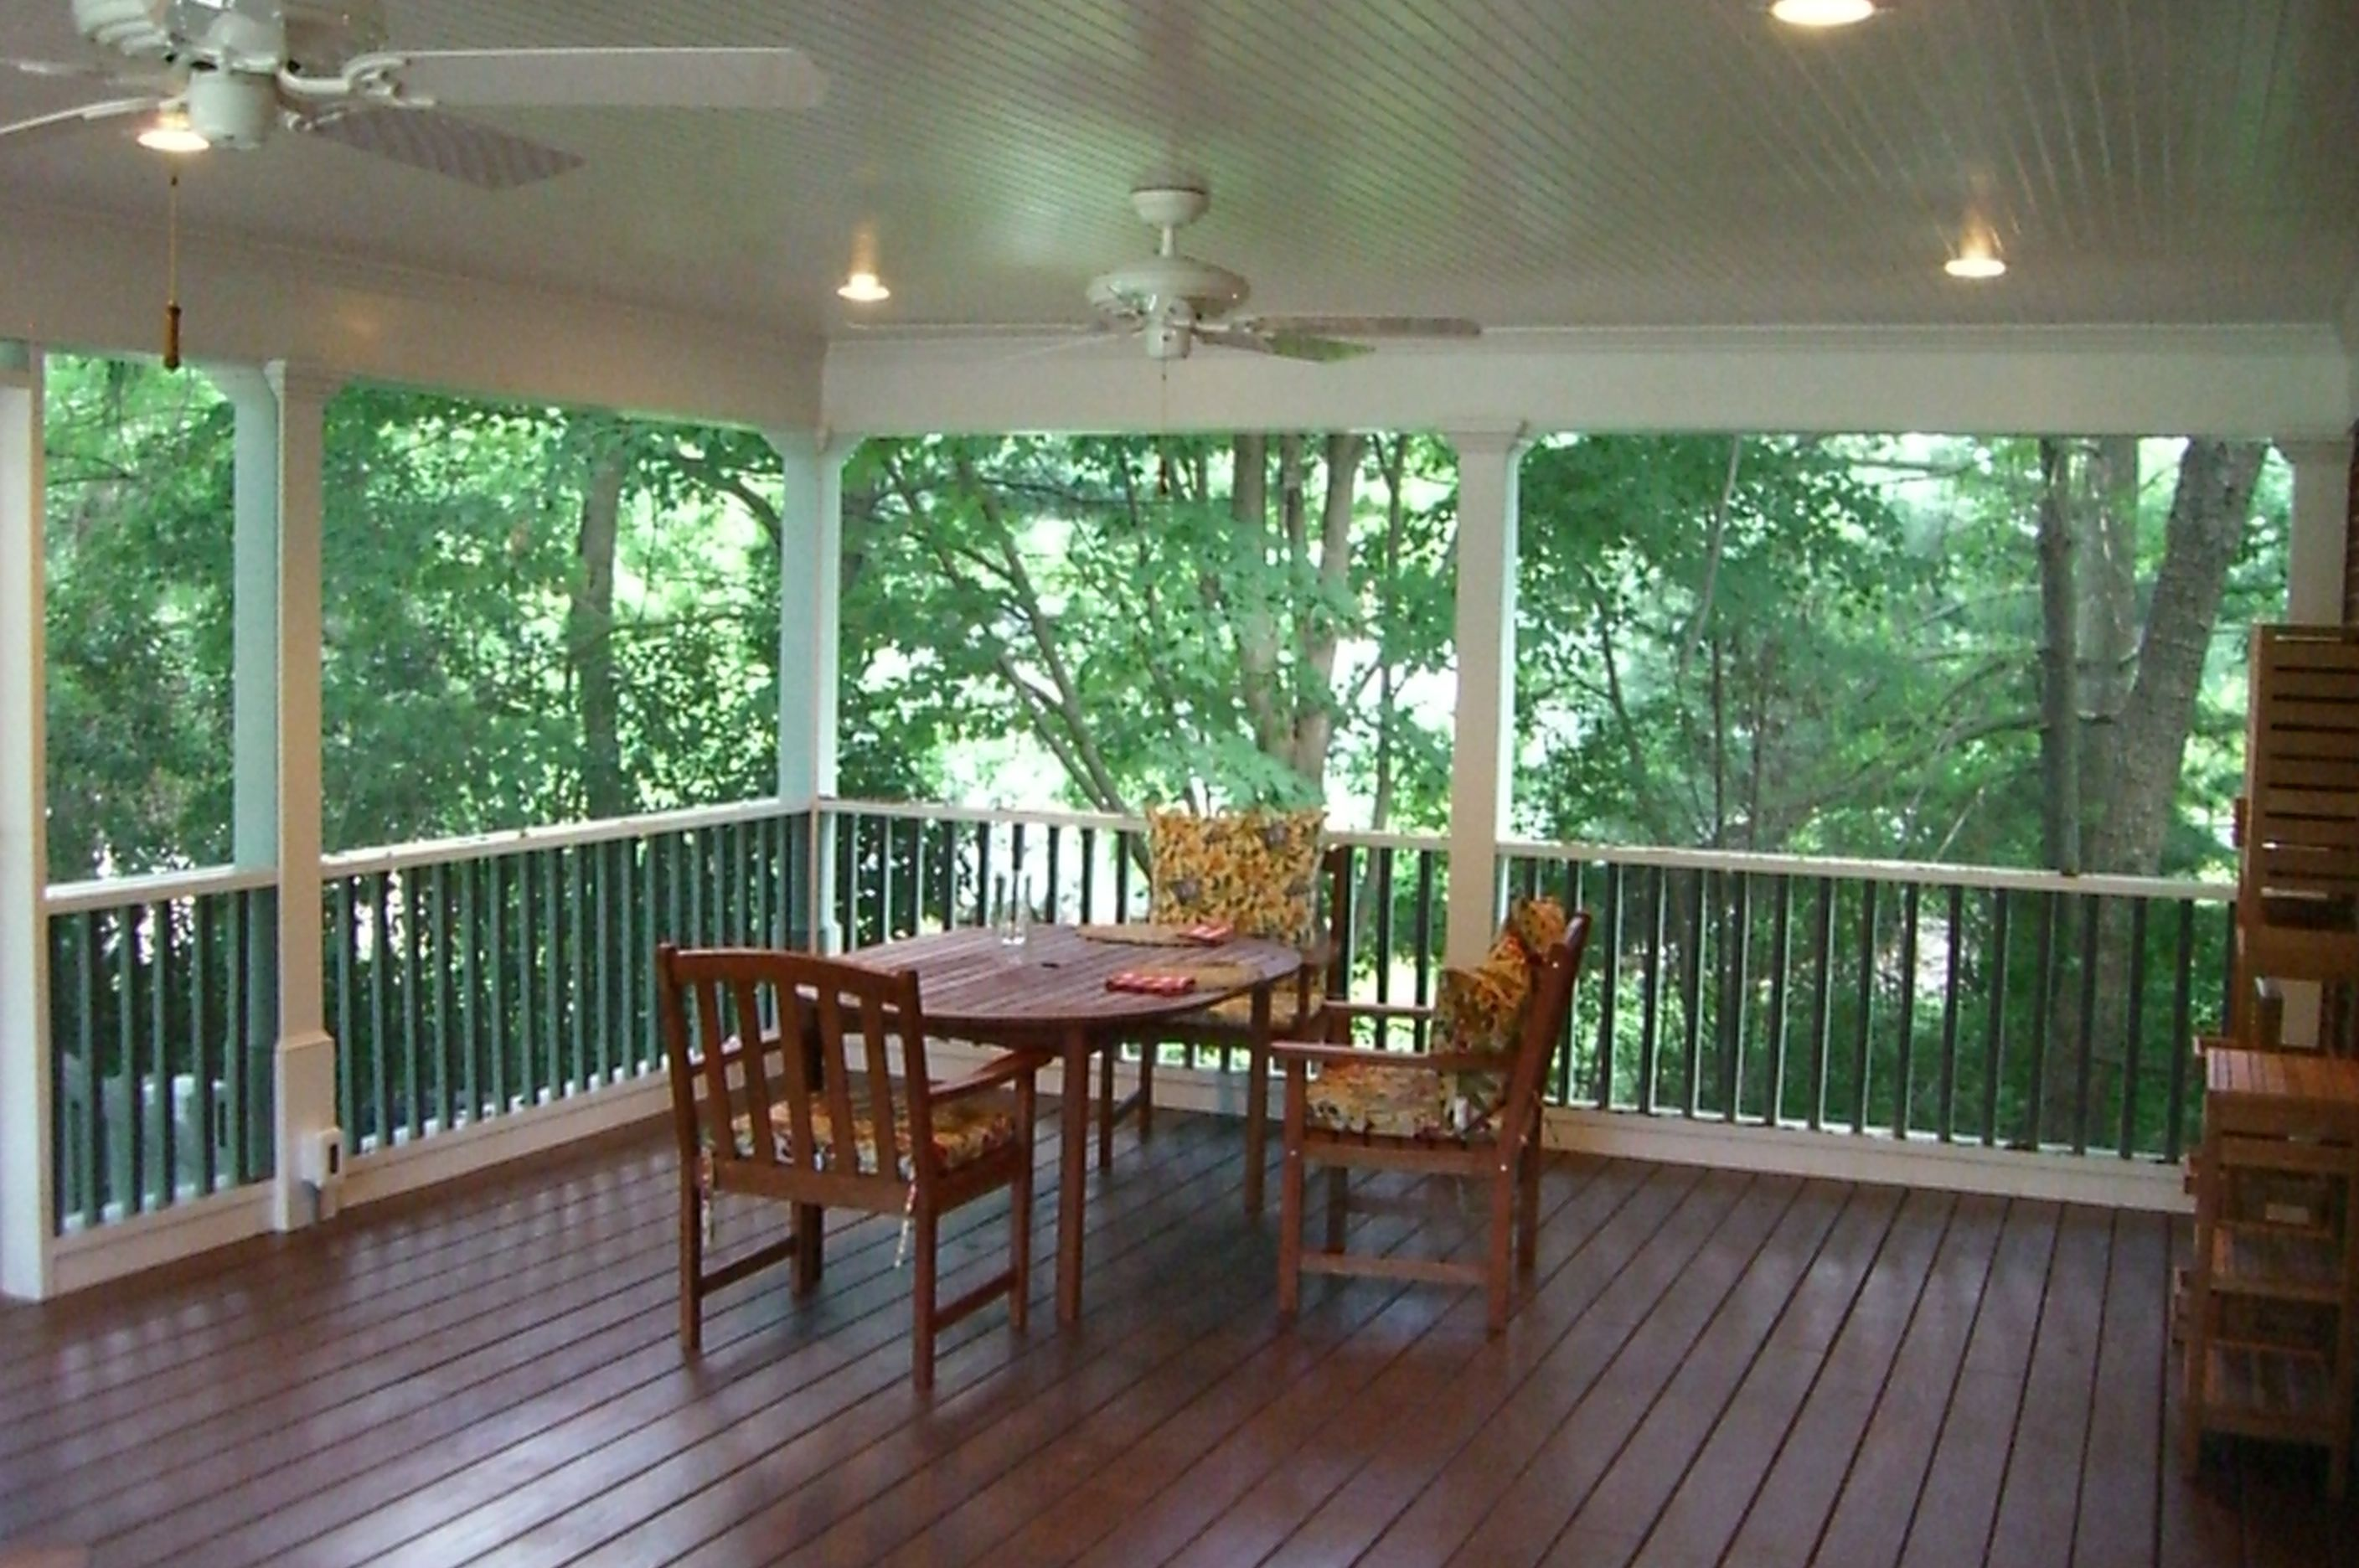 Relax In A Patio Enclosures Screen Room Or Screened Porch Description From Porch Interior Screened Porch Wooden Decks Outdoor screen rooms ideas